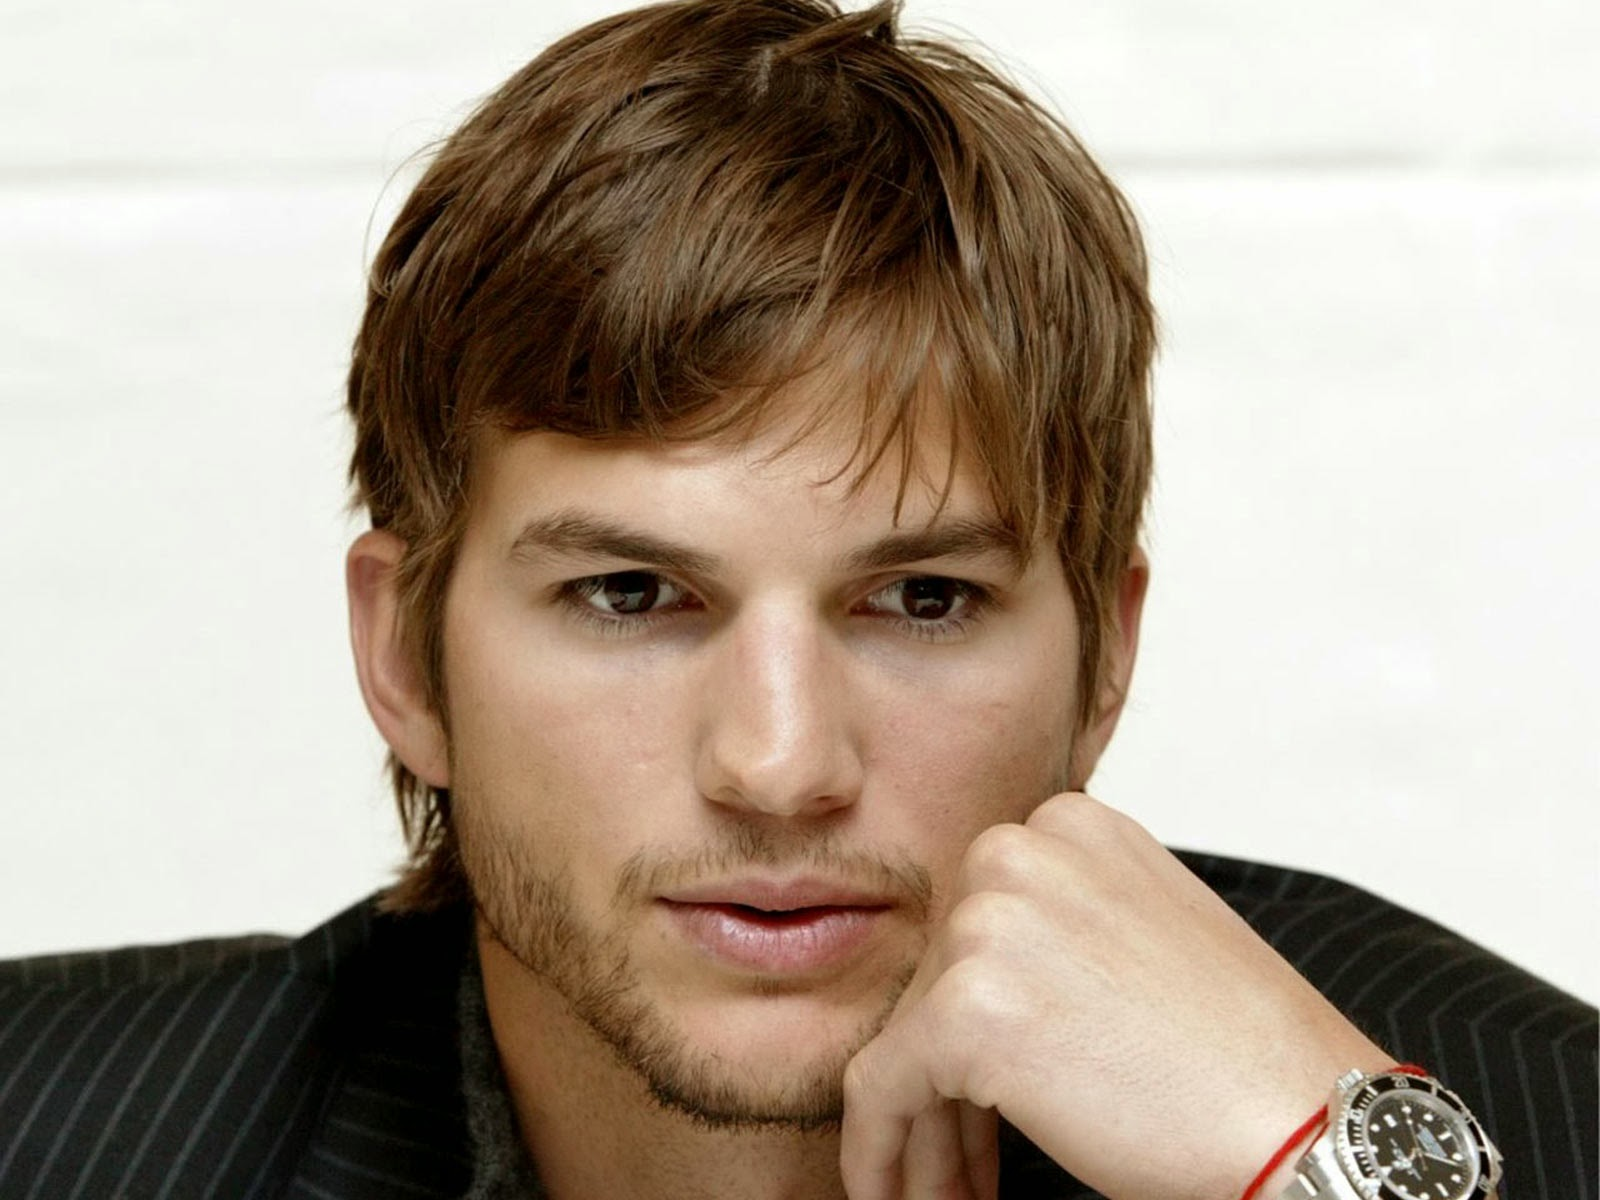 Ashton Kutcher, Success Speech, 3 Things About Life, Inspirational Speech, Transcript, Video, Motivation, Don't live a life build one.